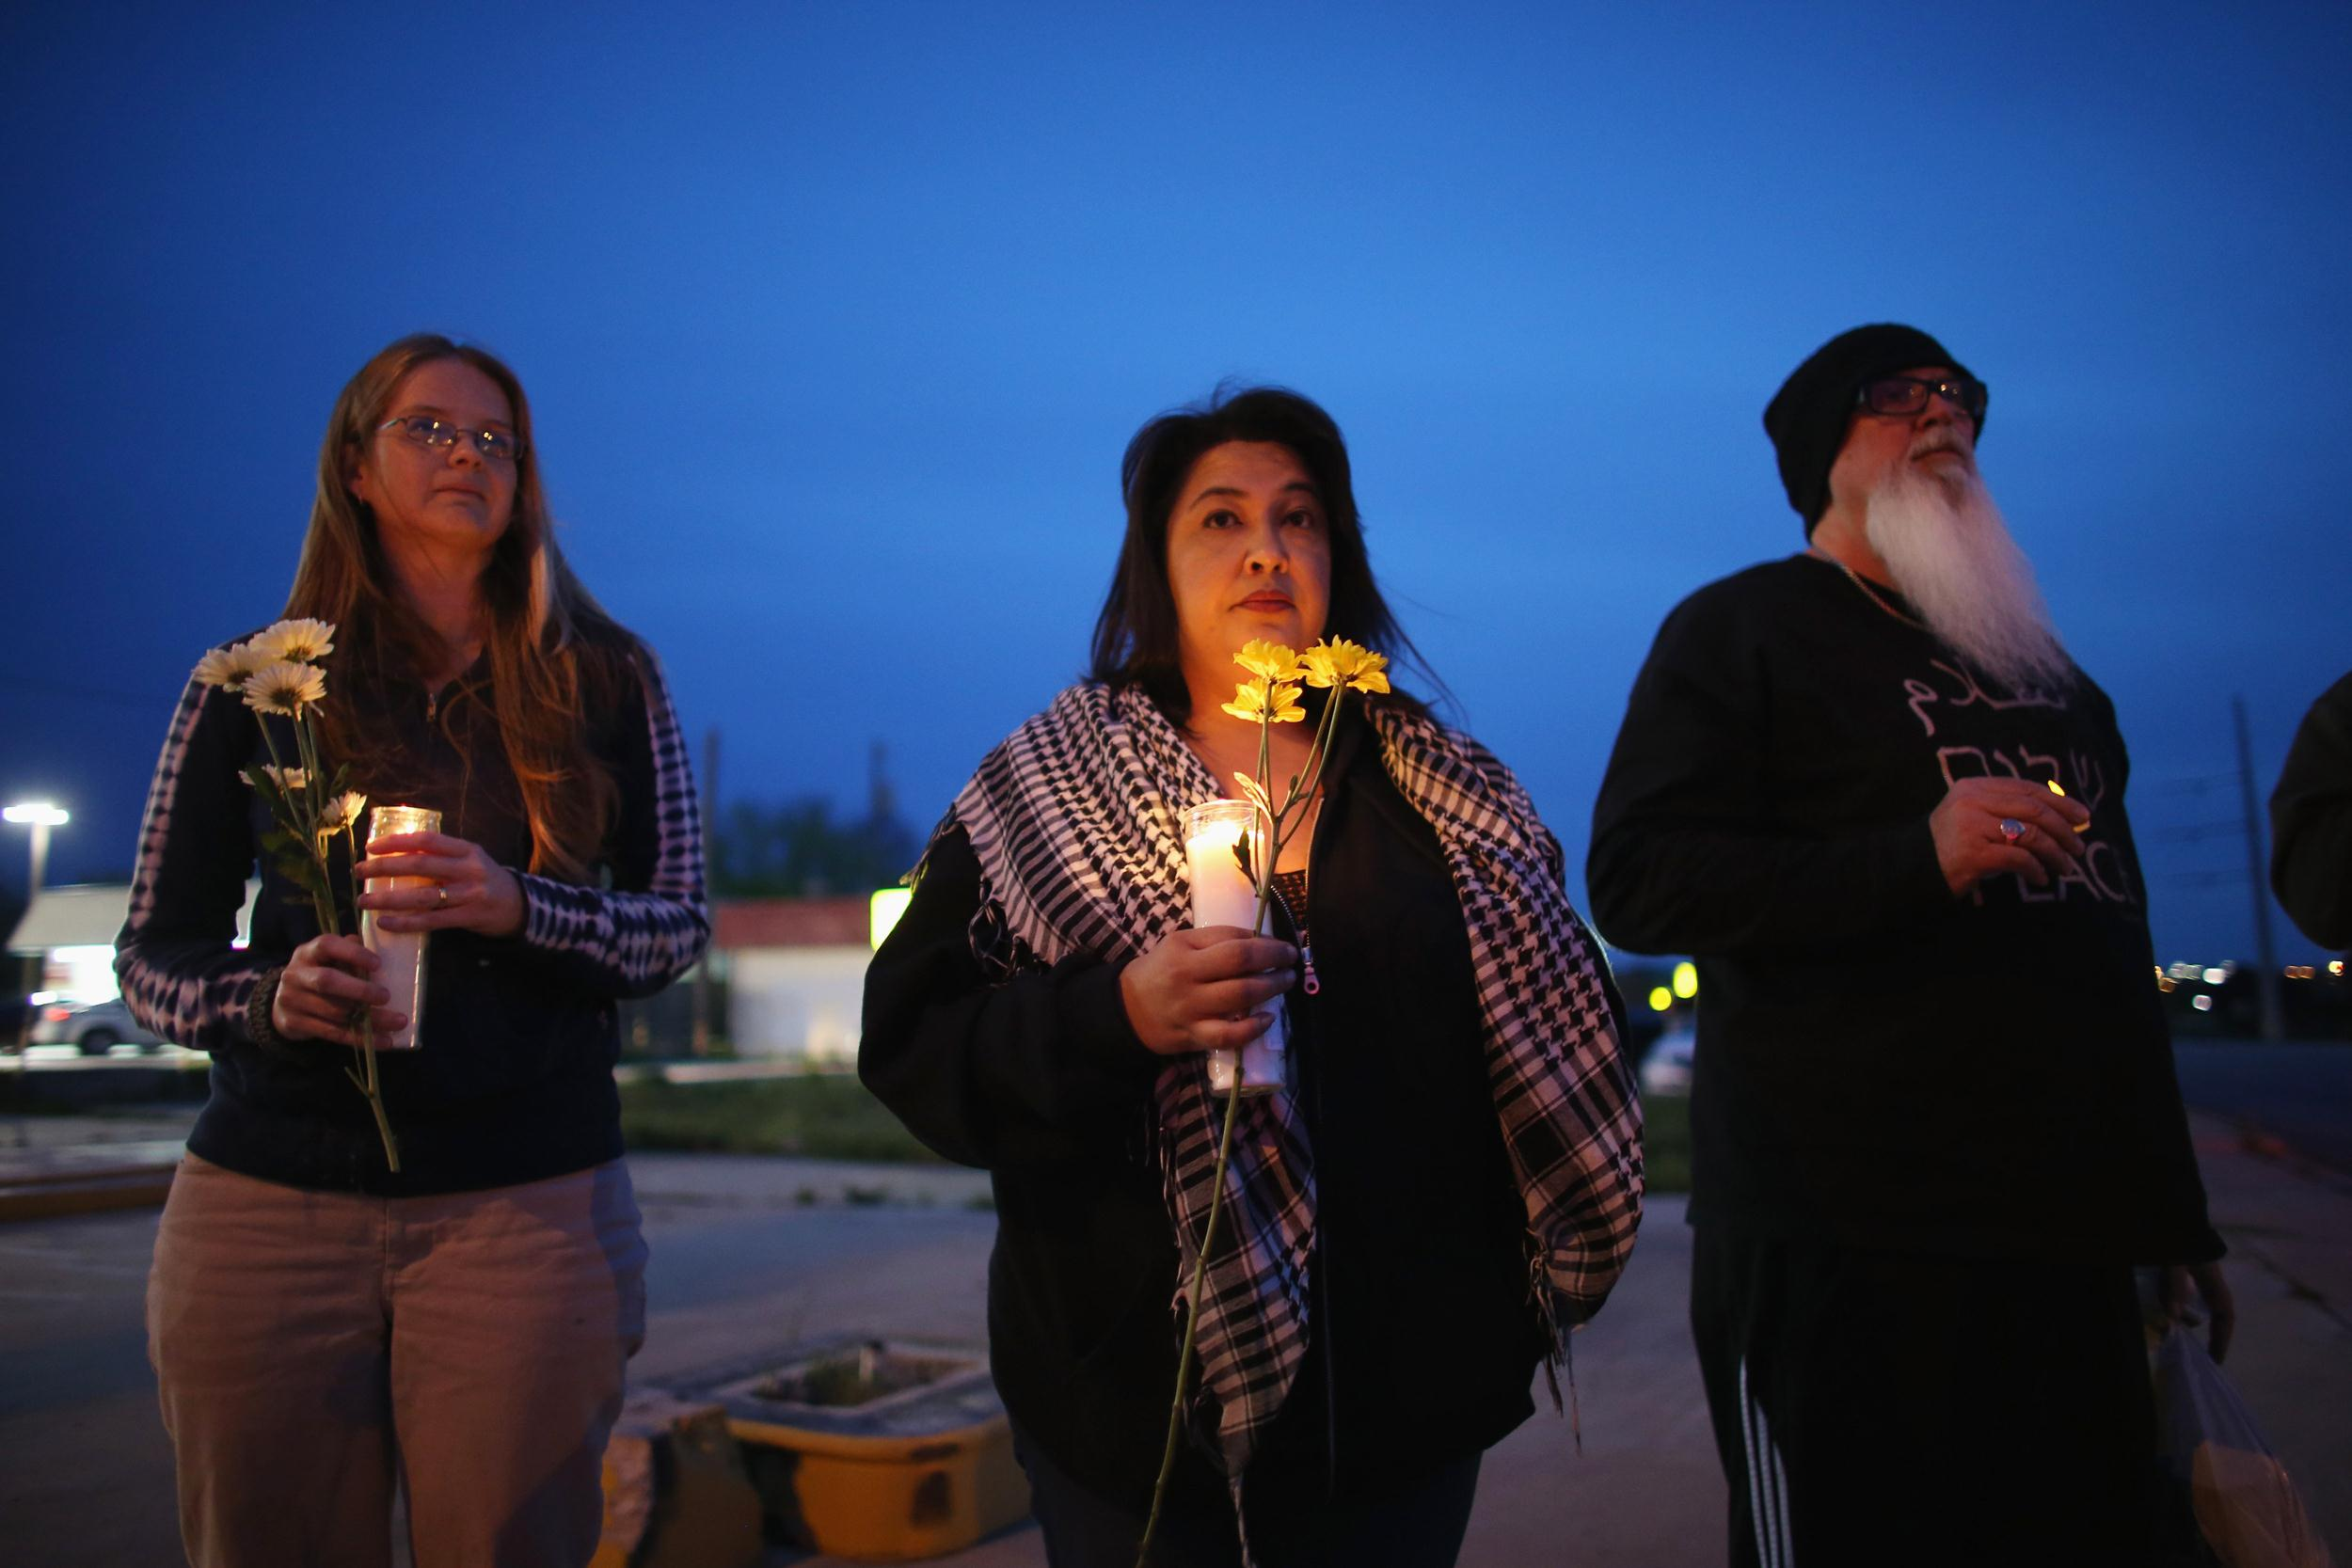 Image: Fort Hood Mourns After Mass Shootings, Searches For Answers